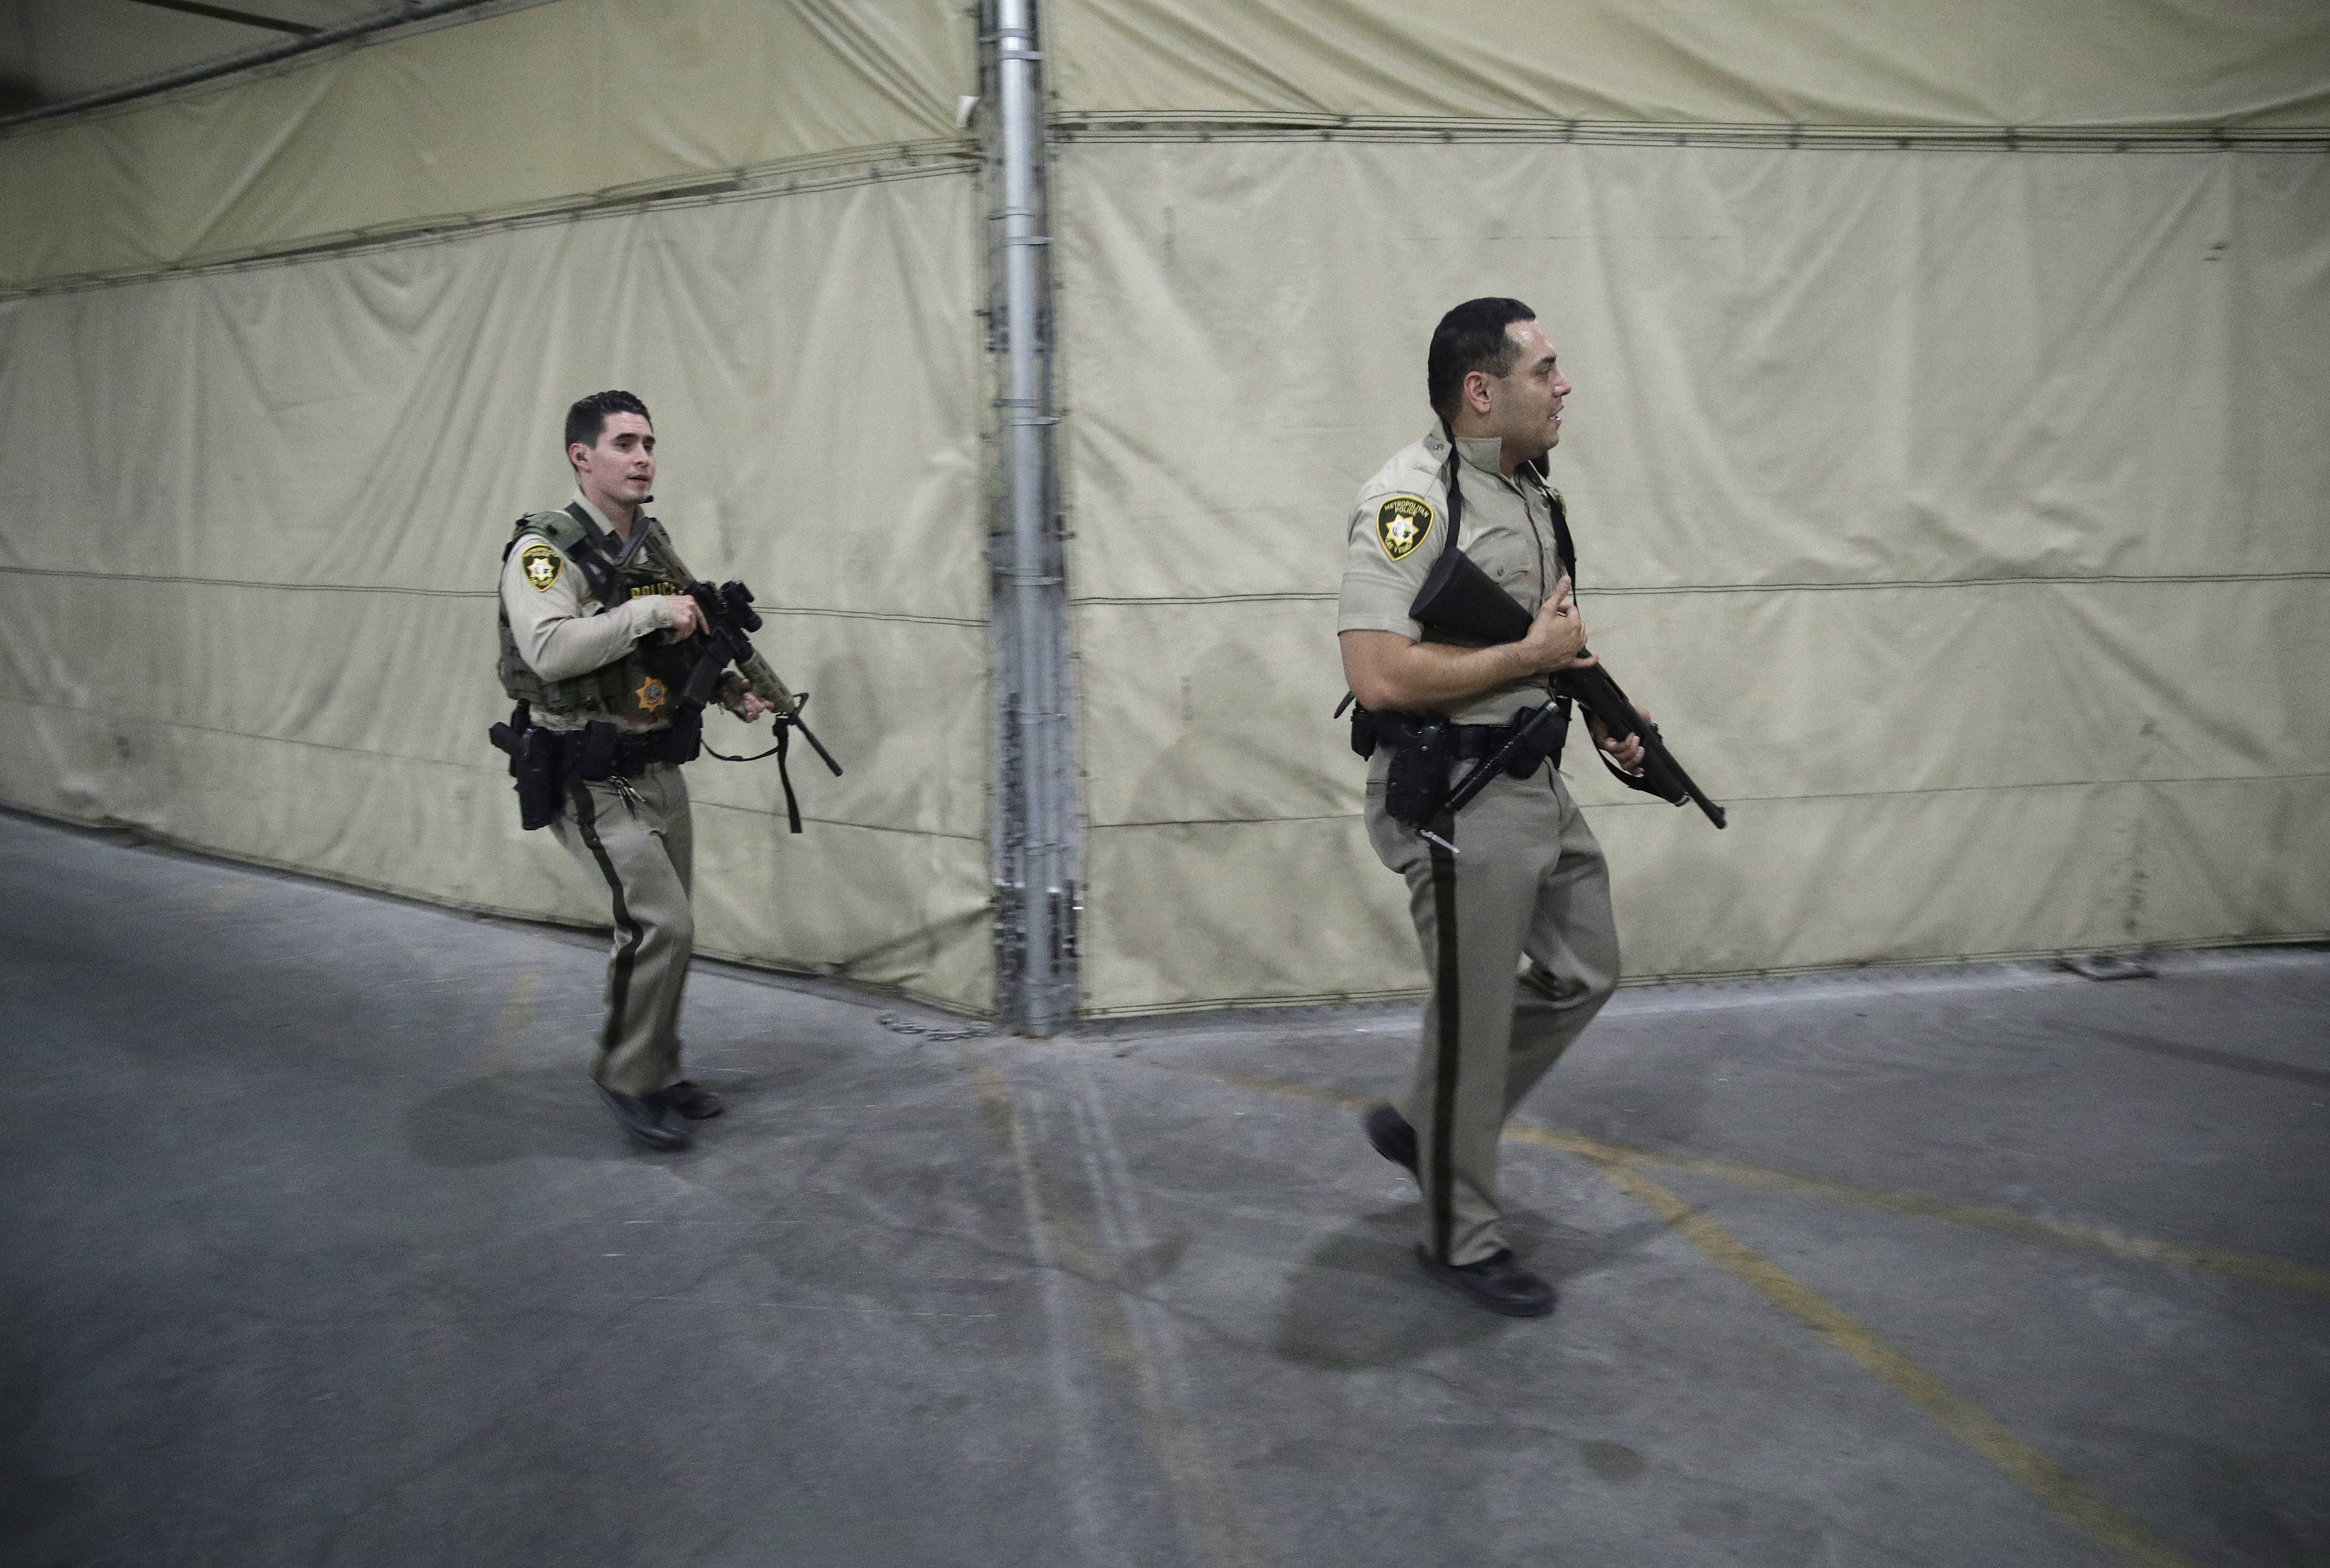 Police officers enter the Mandalay Bay resort and casino during a shooting near the Mandalay Bay resort and casino on the Las Vegas Strip, Sunday, Oct. 1, 2017, in Las Vegas.